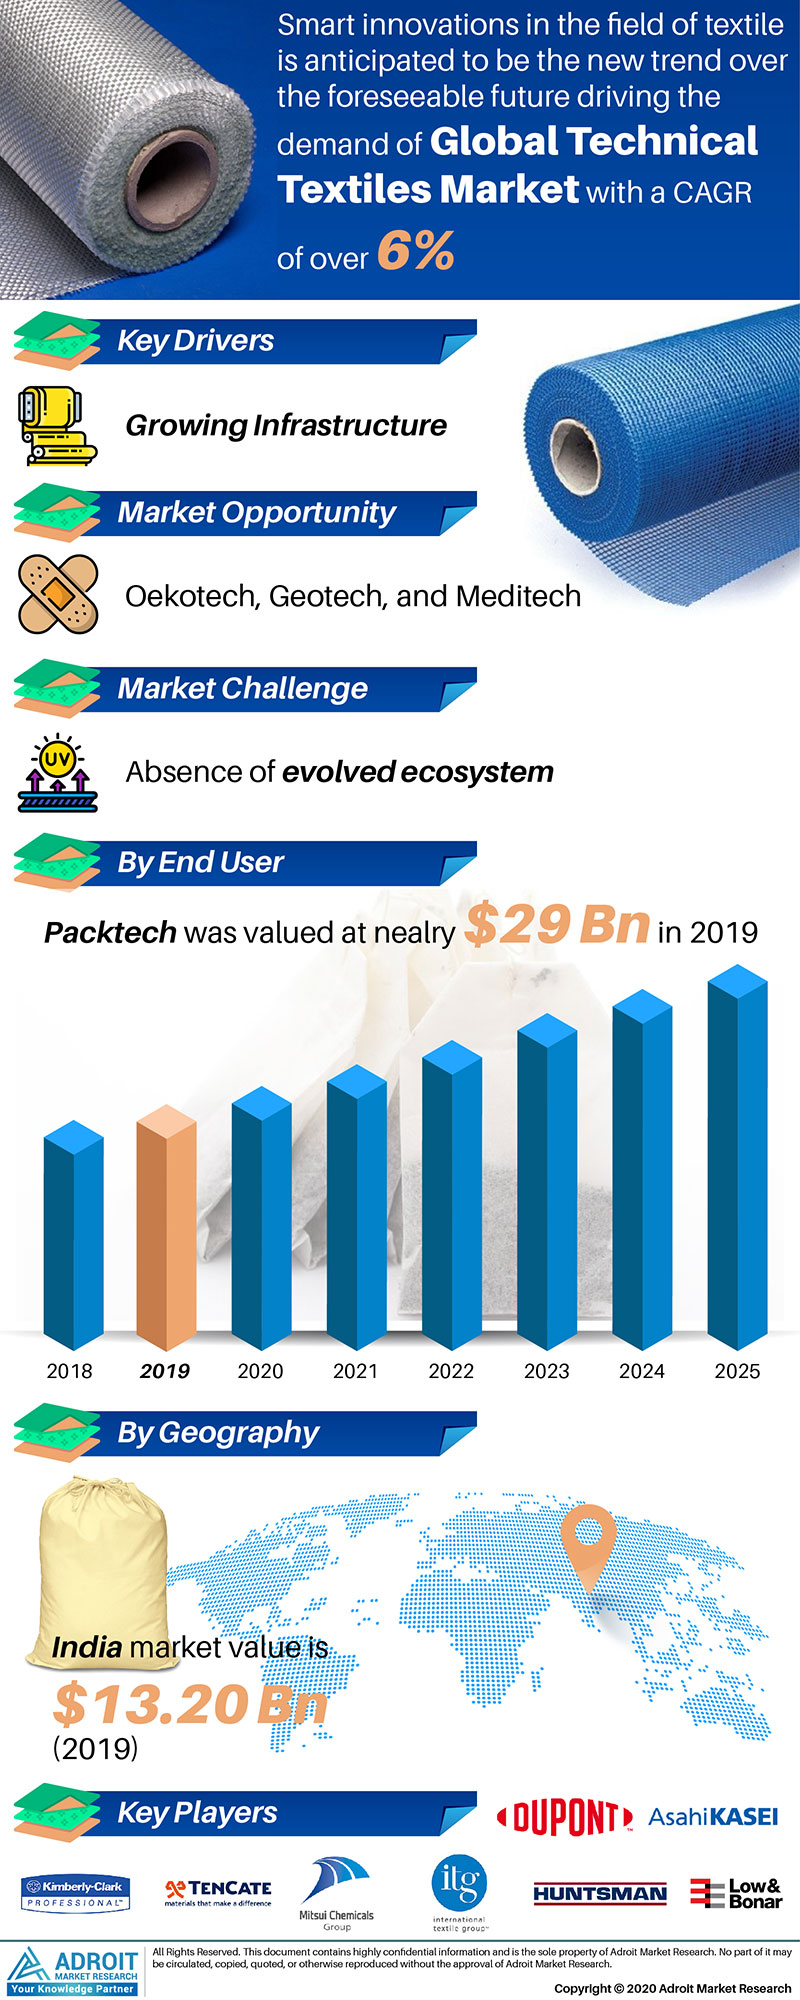 Global Technical Textile Market Size 2018 By Product Type, Formulation, End-user, Region and Forecast 2019 to 2025